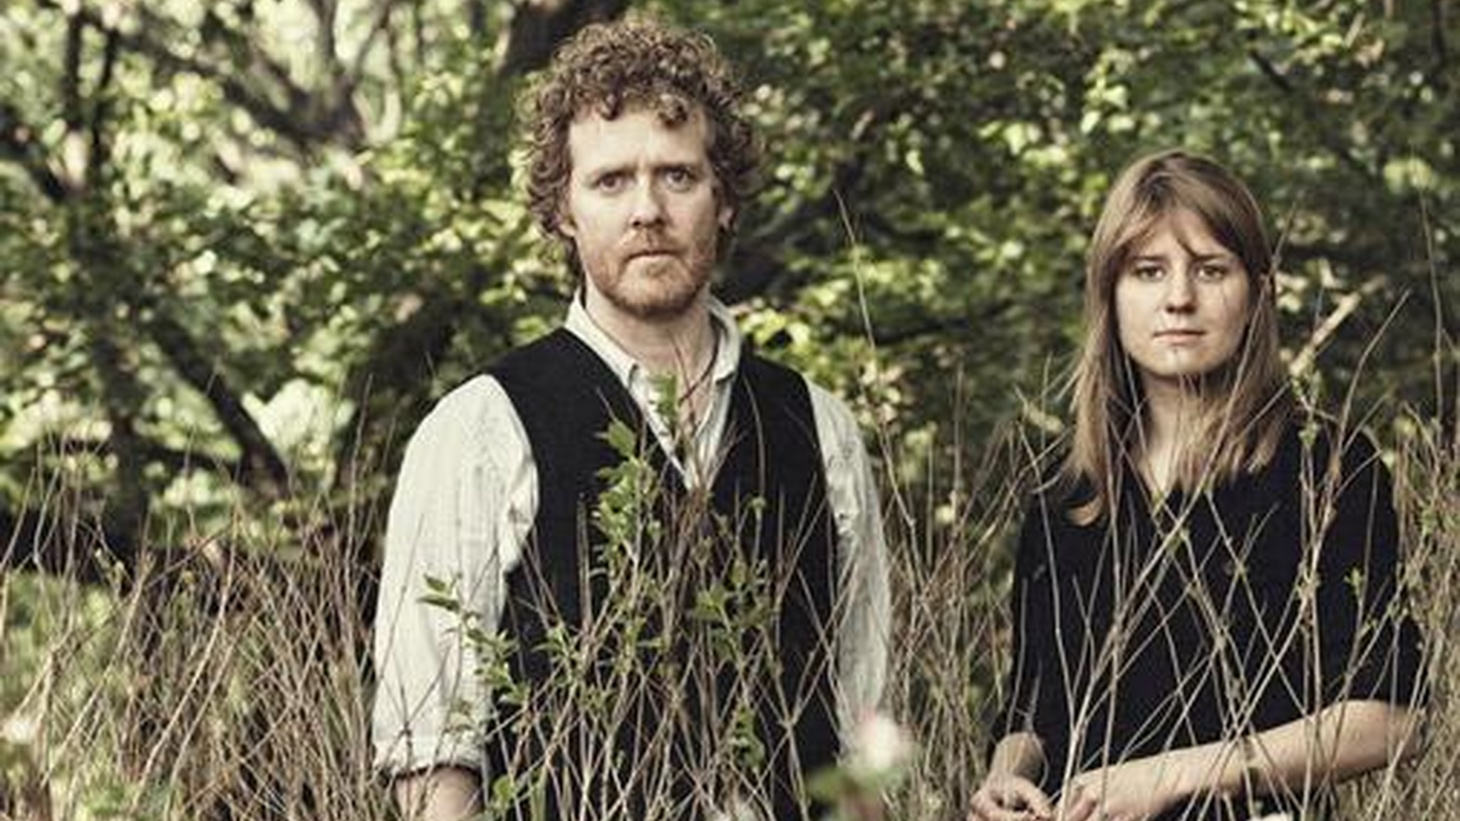 Their real-life romance has ended, but the musical chemistry of Oscar winners Marketa Irglova and Glen Hansard, who became famous as stars of the indie film Once, is better than ever, as we hear on their latest CD, Strict Joy...